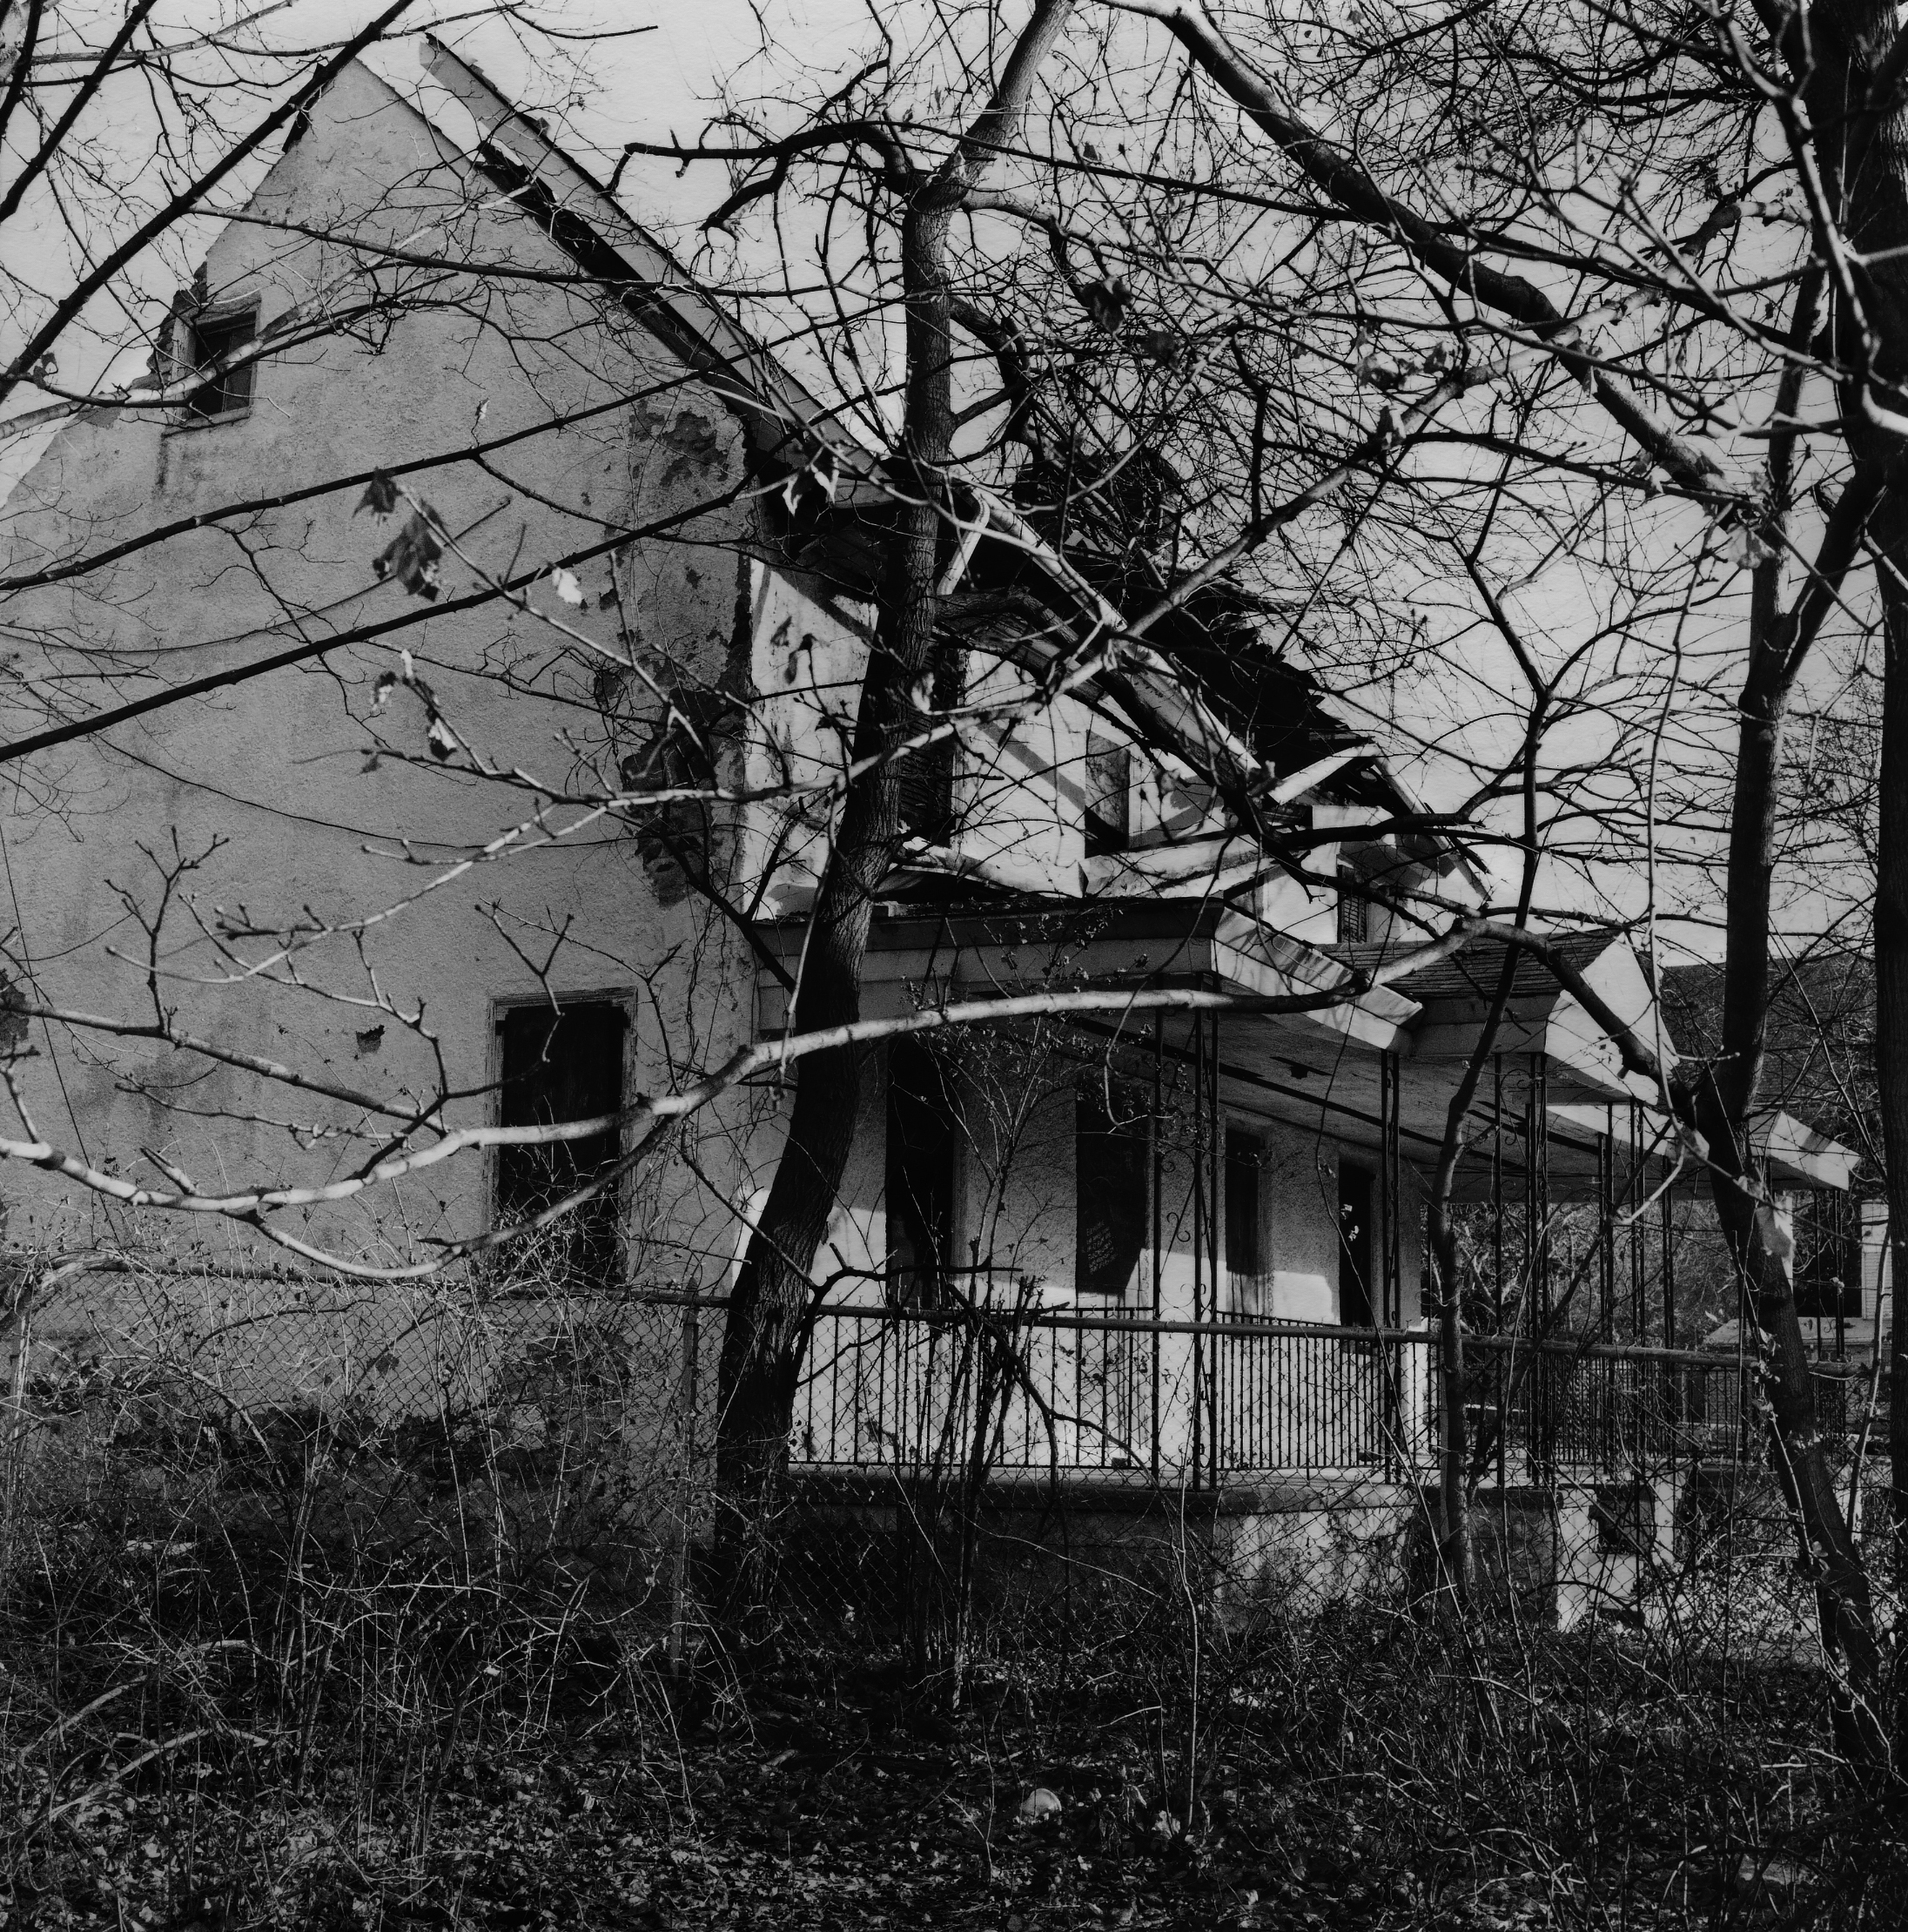 Bunting House, UGRR Station, Darby, PA, 2005